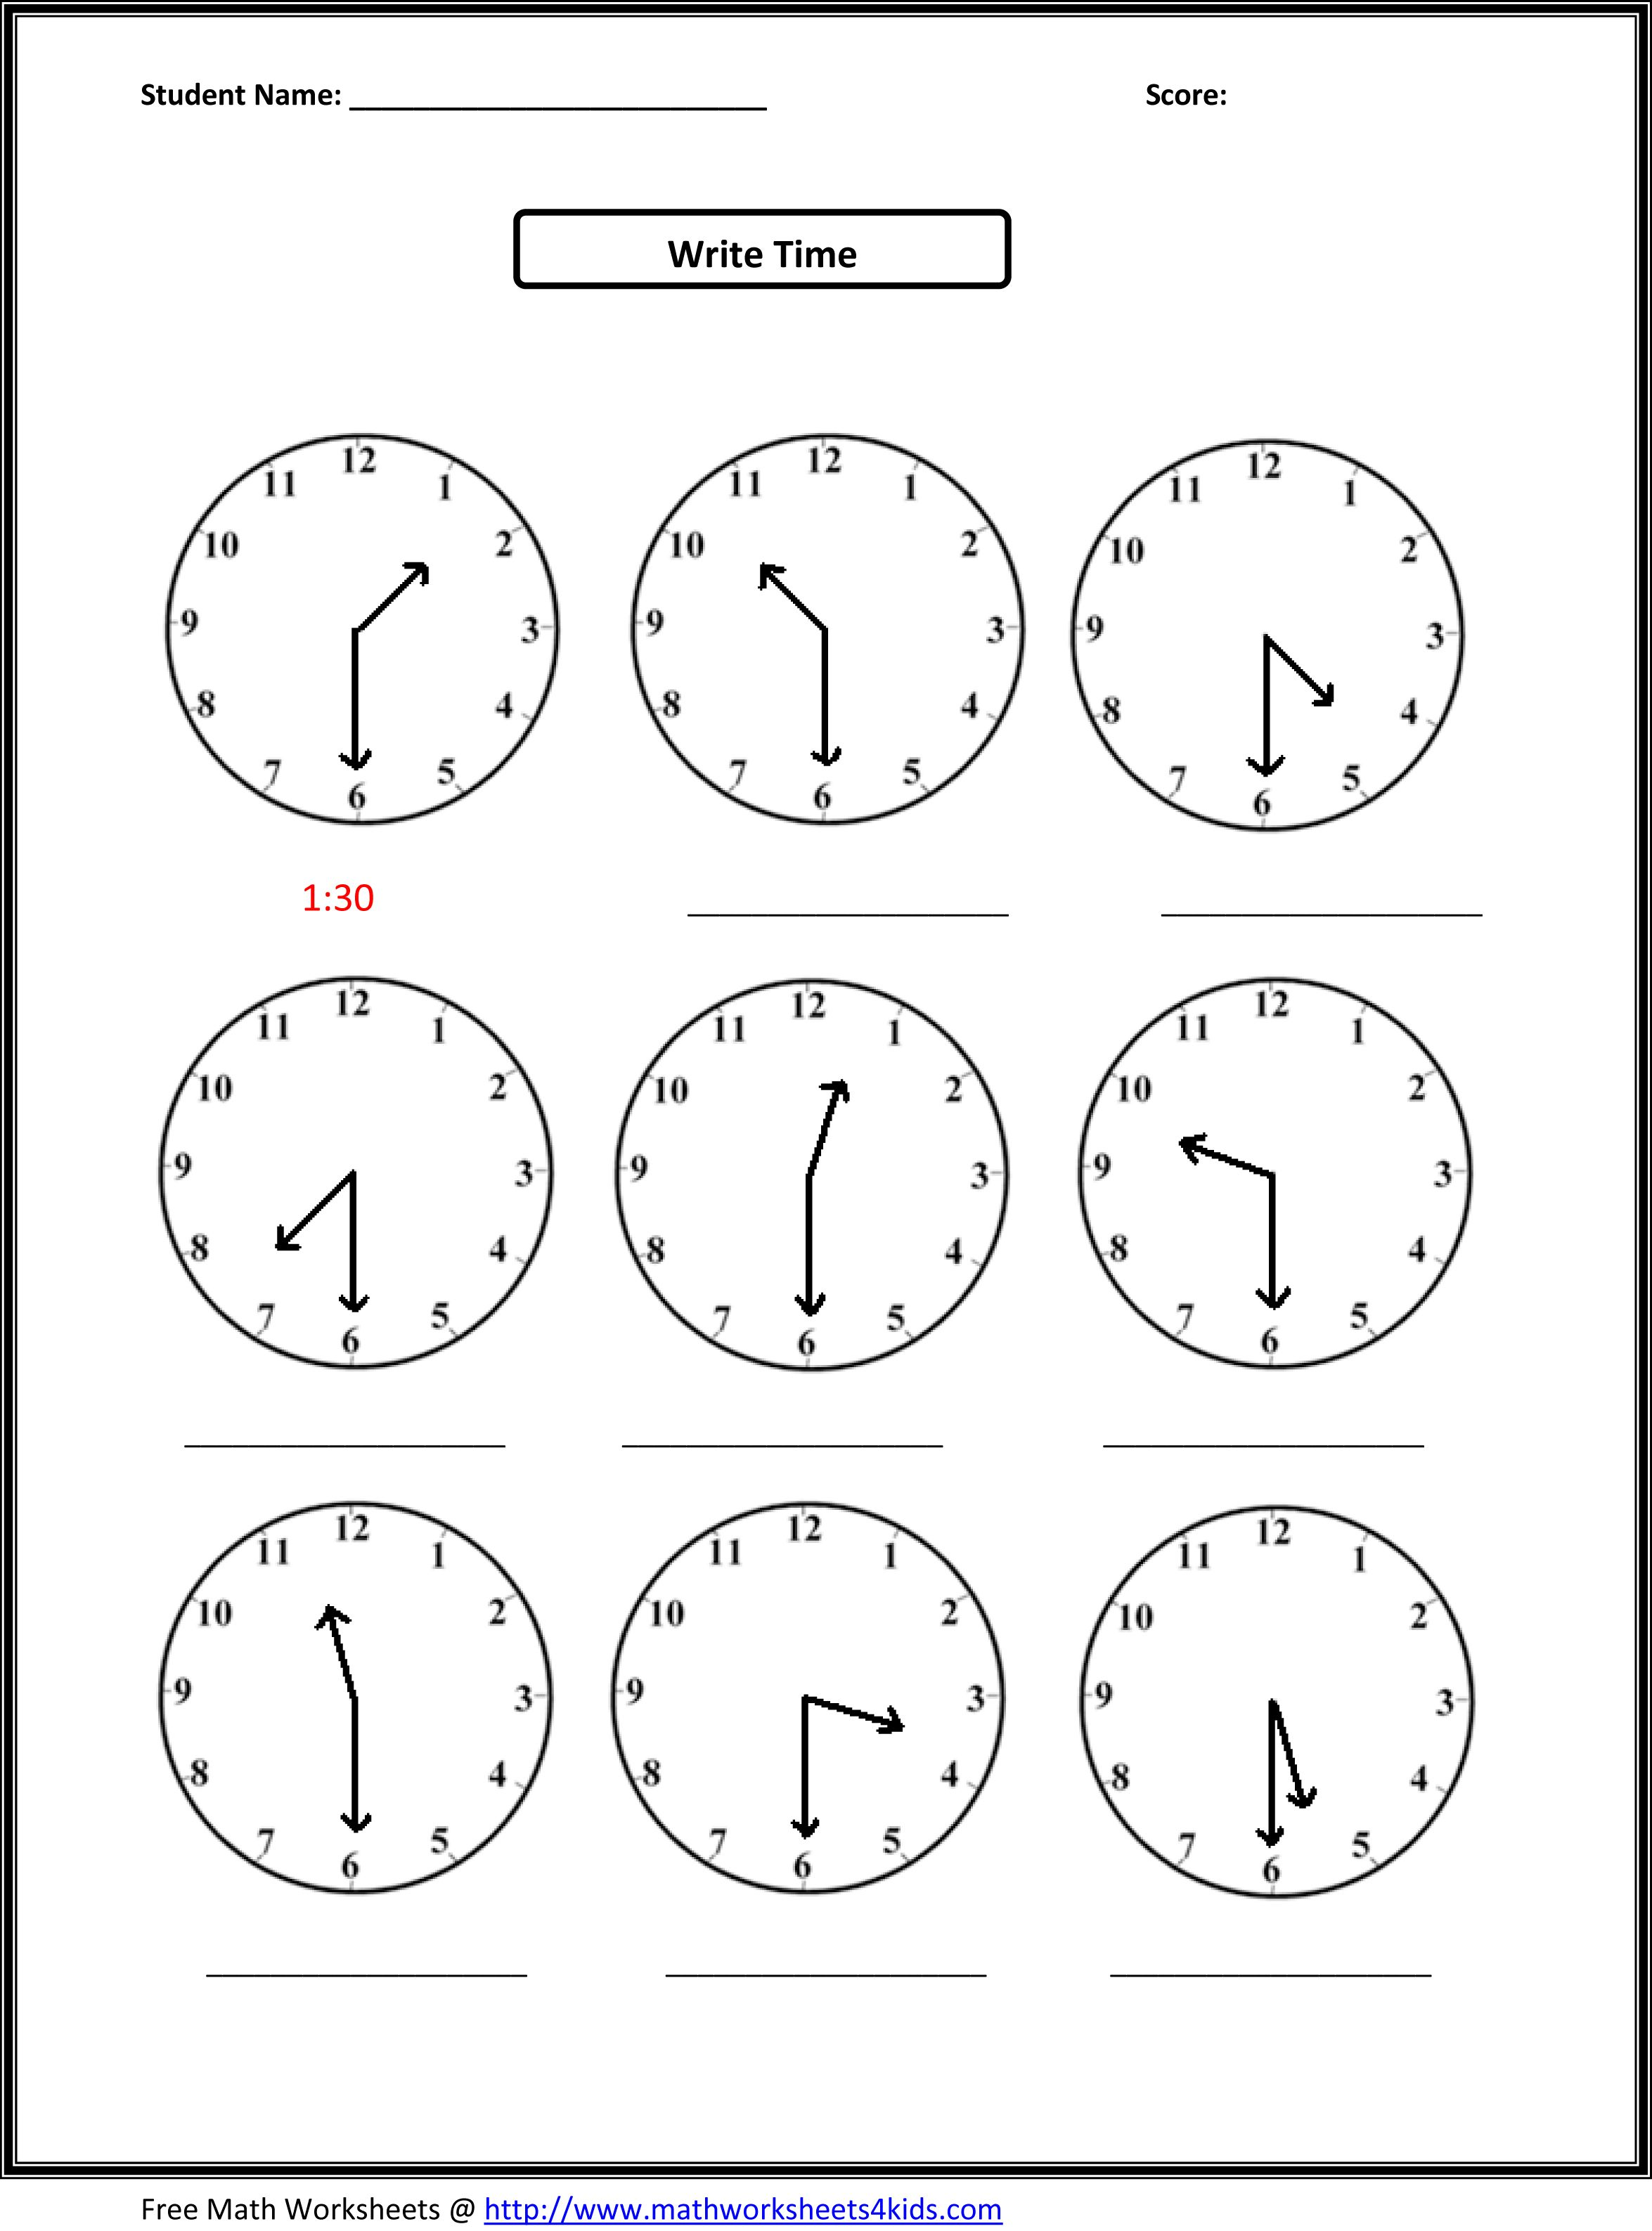 Weirdmailus  Unusual Worksheet On Time For Grade   Reocurent With Licious Free Printable Telling Time Worksheets Nd Grade  Reocurent With Cool Scientific Method Template Worksheet Also Number Identification Worksheet In Addition Intergers Worksheets And Math Worksheets For Kids Grade  As Well As Writing Sight Words Worksheets Additionally Photosynthesis Worksheets For Middle School From Reocurentcom With Weirdmailus  Licious Worksheet On Time For Grade   Reocurent With Cool Free Printable Telling Time Worksheets Nd Grade  Reocurent And Unusual Scientific Method Template Worksheet Also Number Identification Worksheet In Addition Intergers Worksheets From Reocurentcom